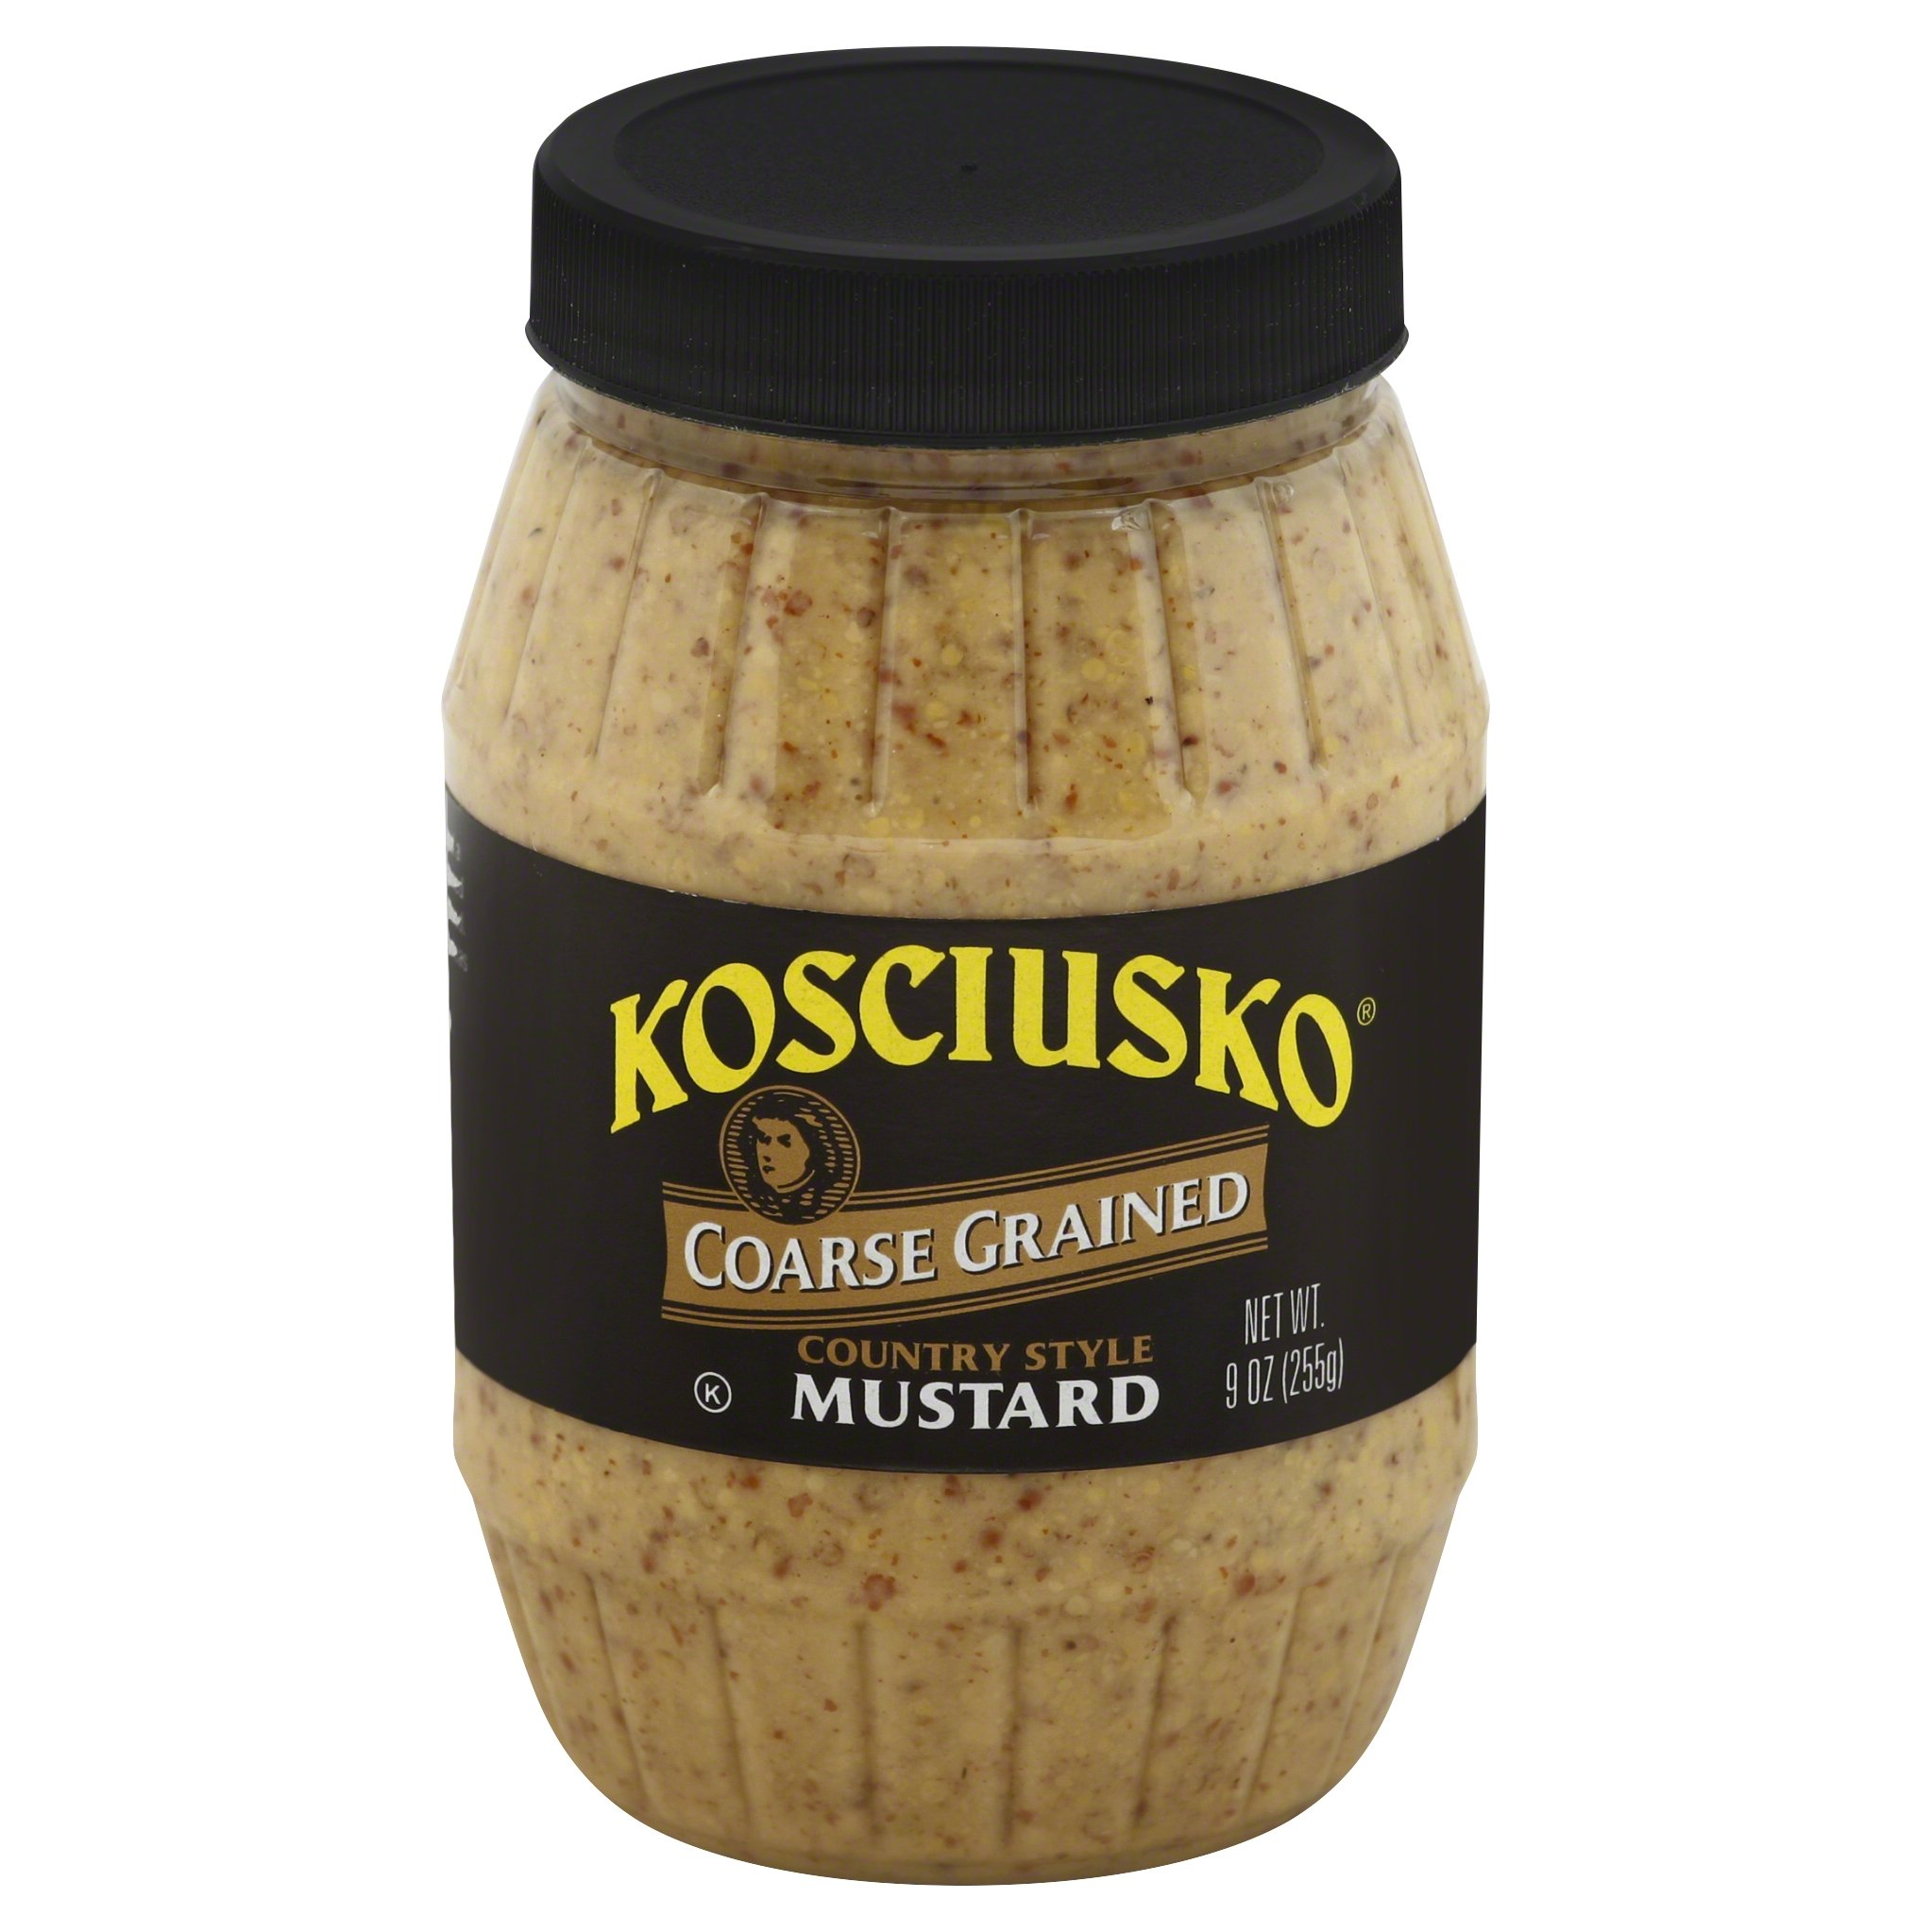 Plochman's Kosciusko Coarse Grained Country Style Mustard, 9 Ounce (Pack of 12)